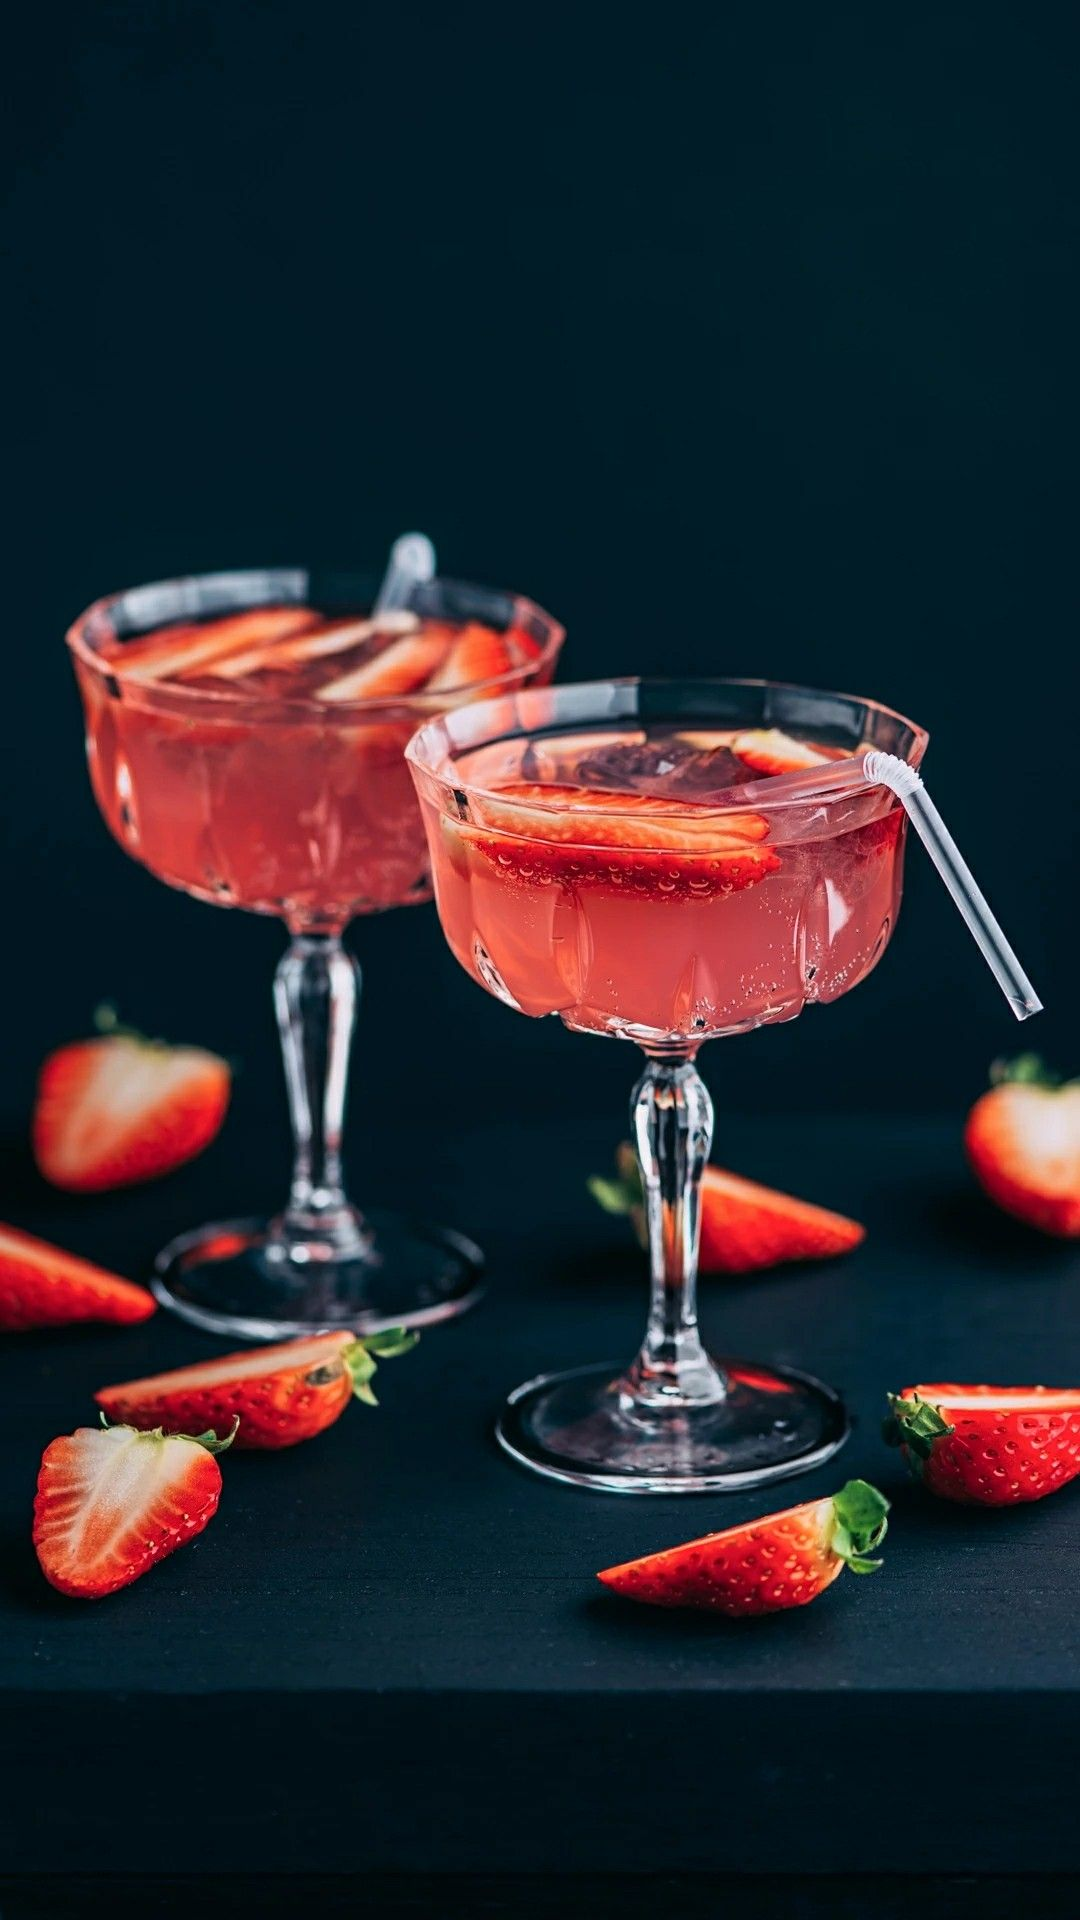 Strawberry Food And Drink Strawberry Food